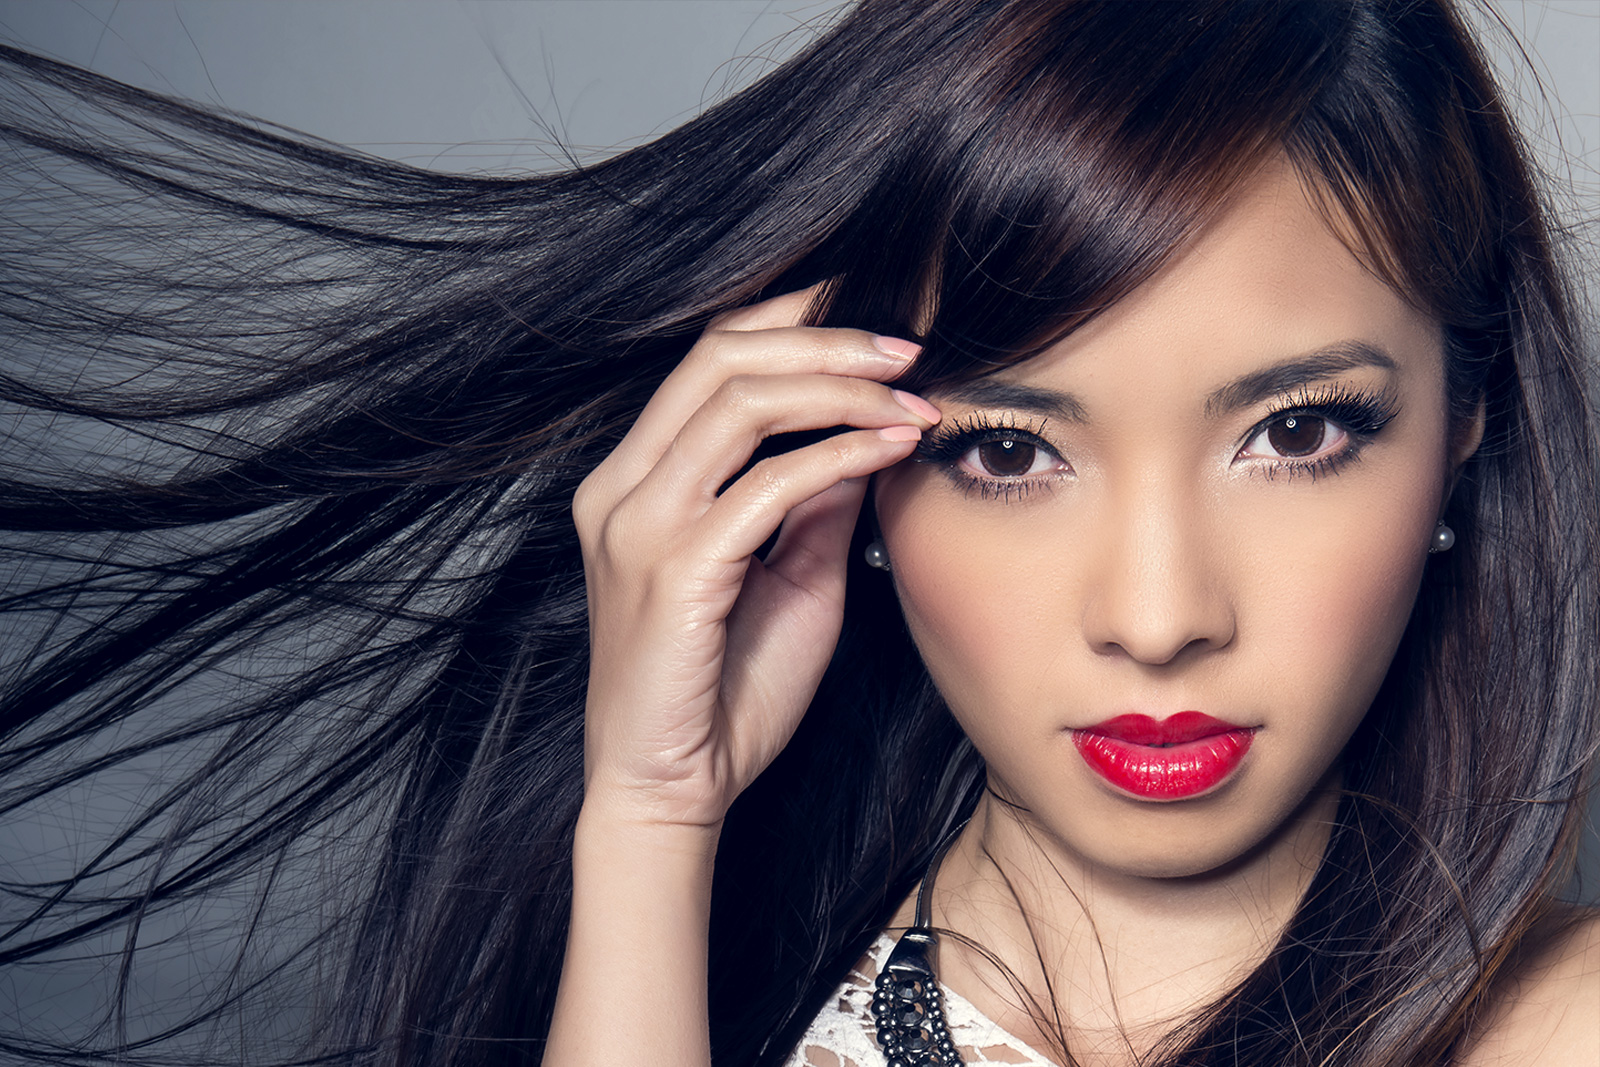 Jelz-Straight-Salon-Hair-Asian-Make-Up-Chicago-Schaumburg-Straightening-Japanese-Golf-Road-Model